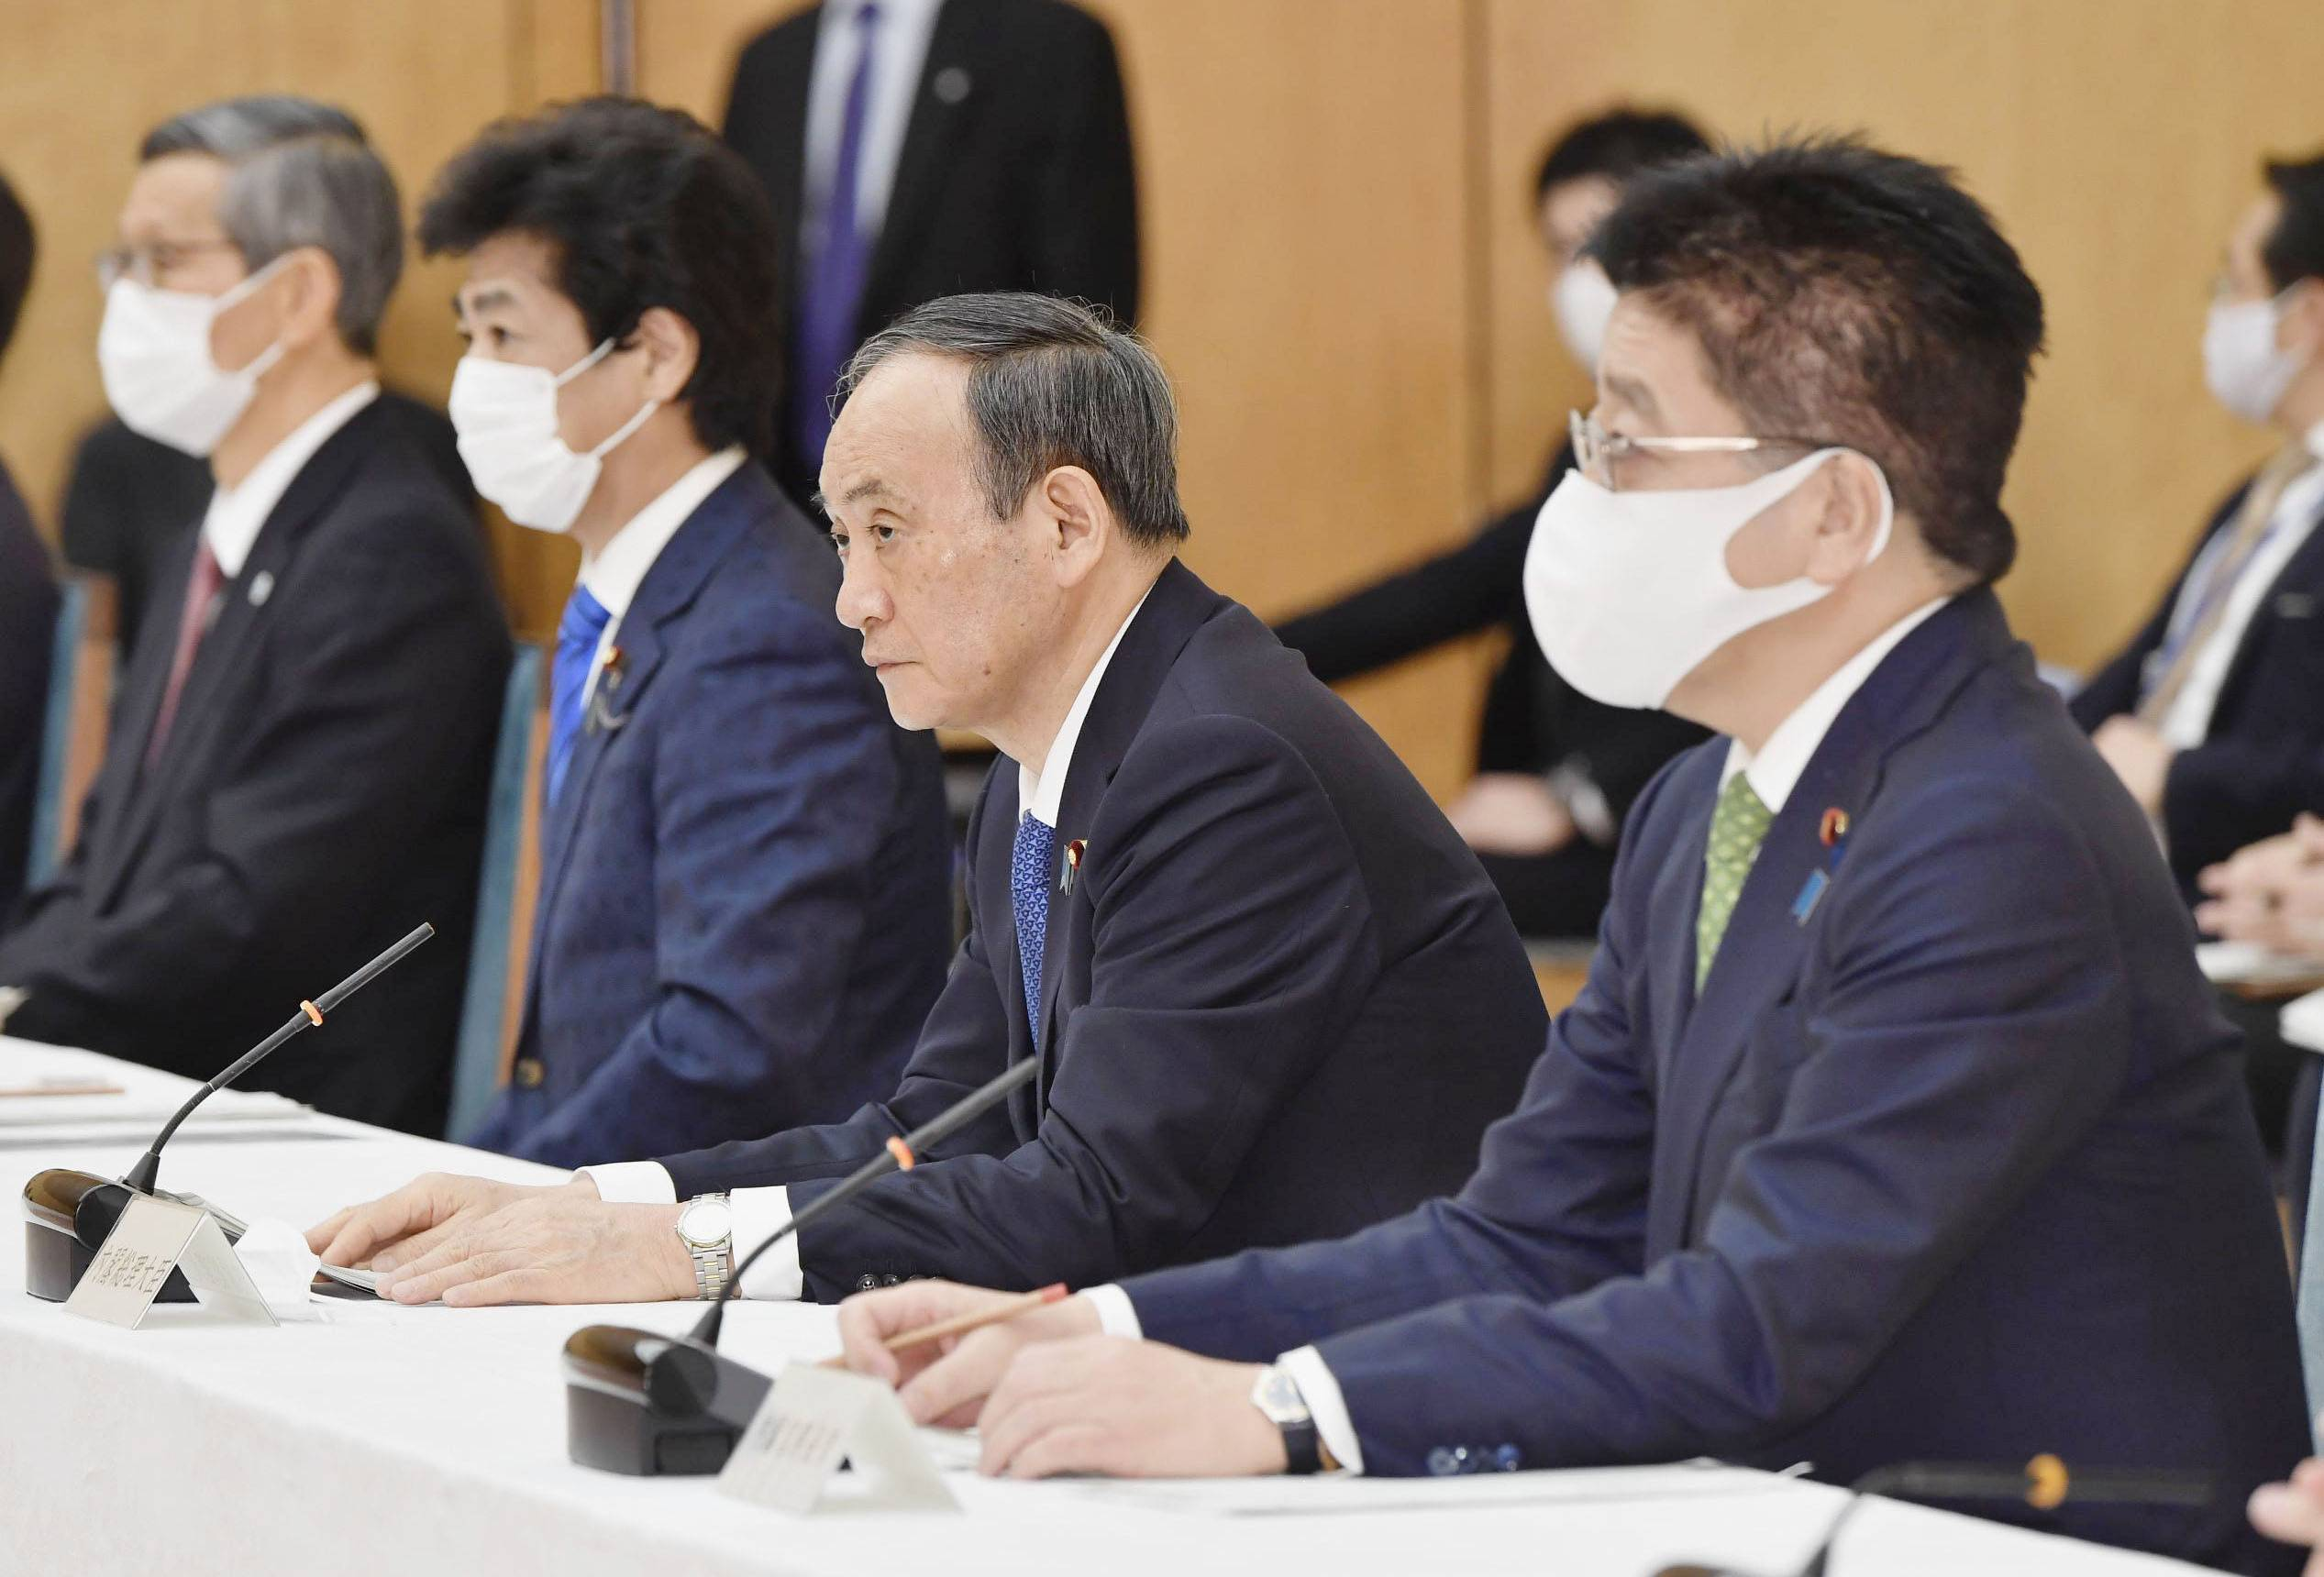 Prime Minister Yoshihide Suga takes part in a meeting about the government's coronavirus response on Jan. 7 at the Prime Minister's Office in Tokyo. | PRIME MINISTER'S OFFICE / VIA KYODO